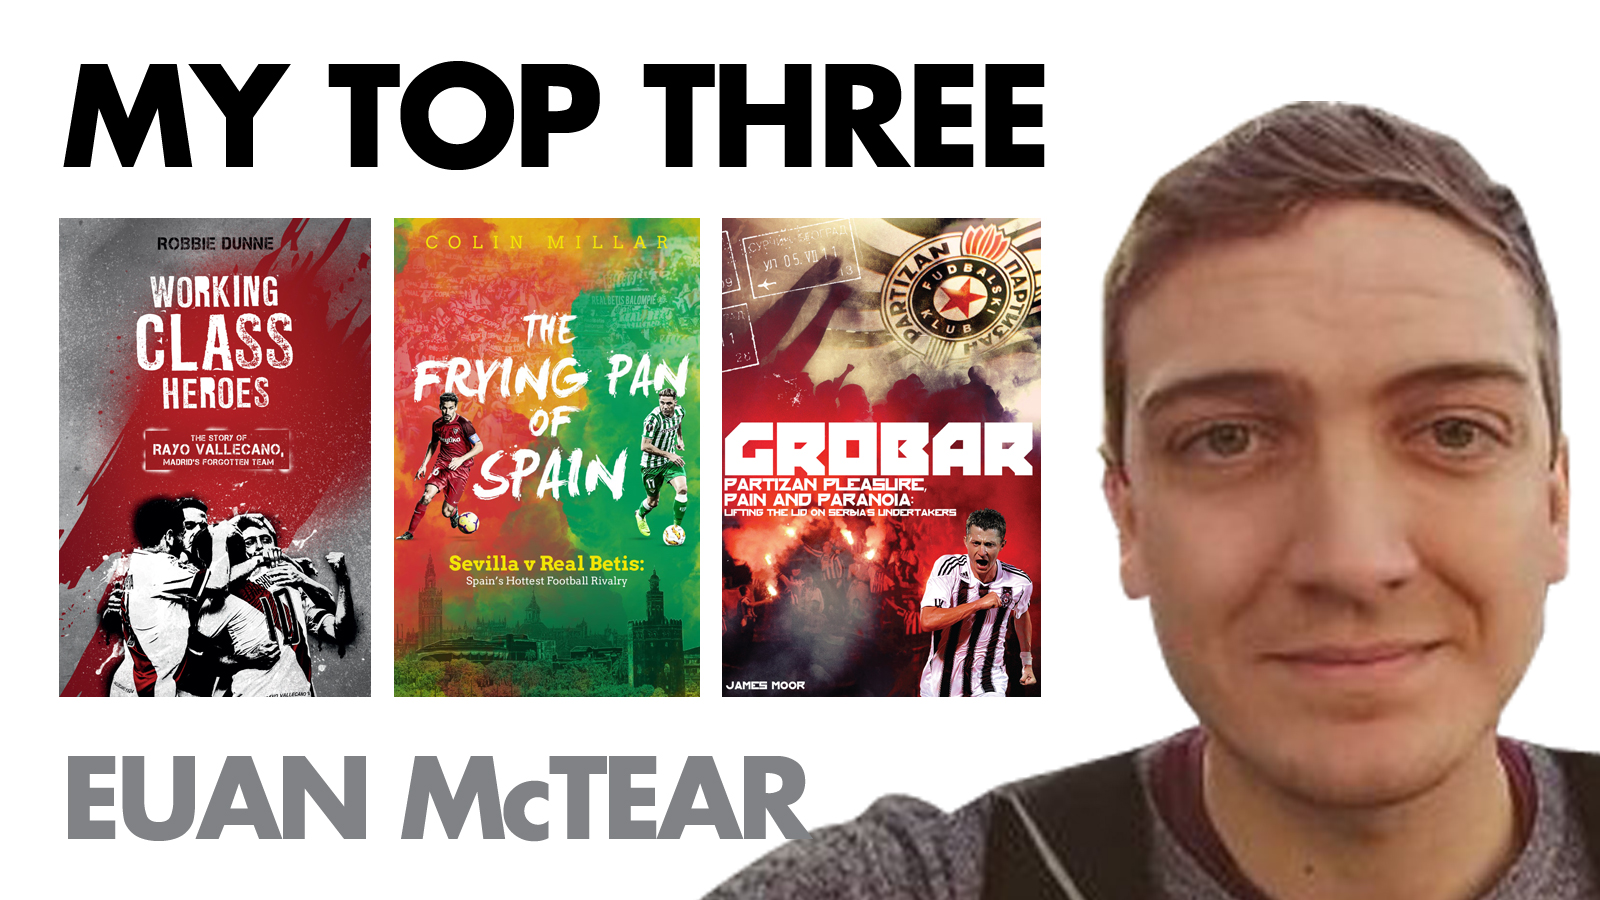 MY TOP THREE: EUAN McTEAR